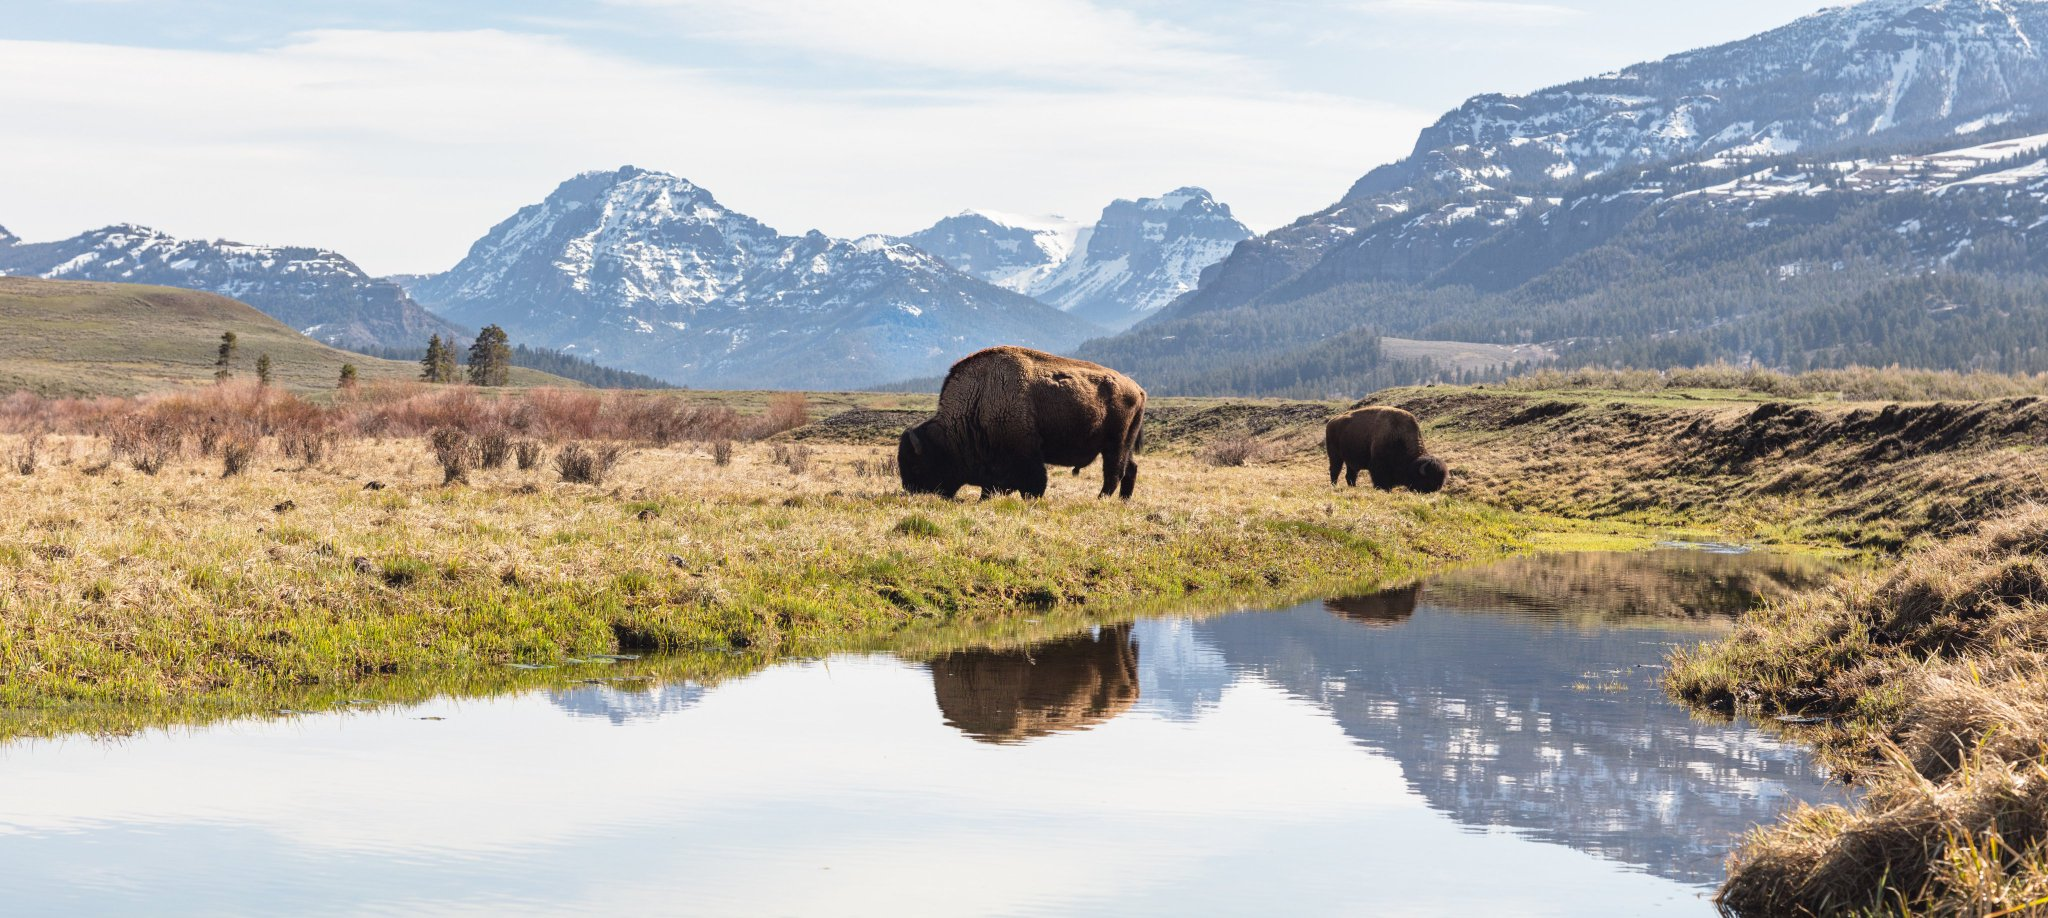 130 years ago today, Wyoming became the 44th state in the Union! Approximately 96% of Yellowstone resides in the state. What are some of your favorite sites to explore in Wyoming?  #WyomingDay  Photo: Bull bison grazing along an ephemeral pool in Lamar Valley https://t.co/z0DfKYaPpz